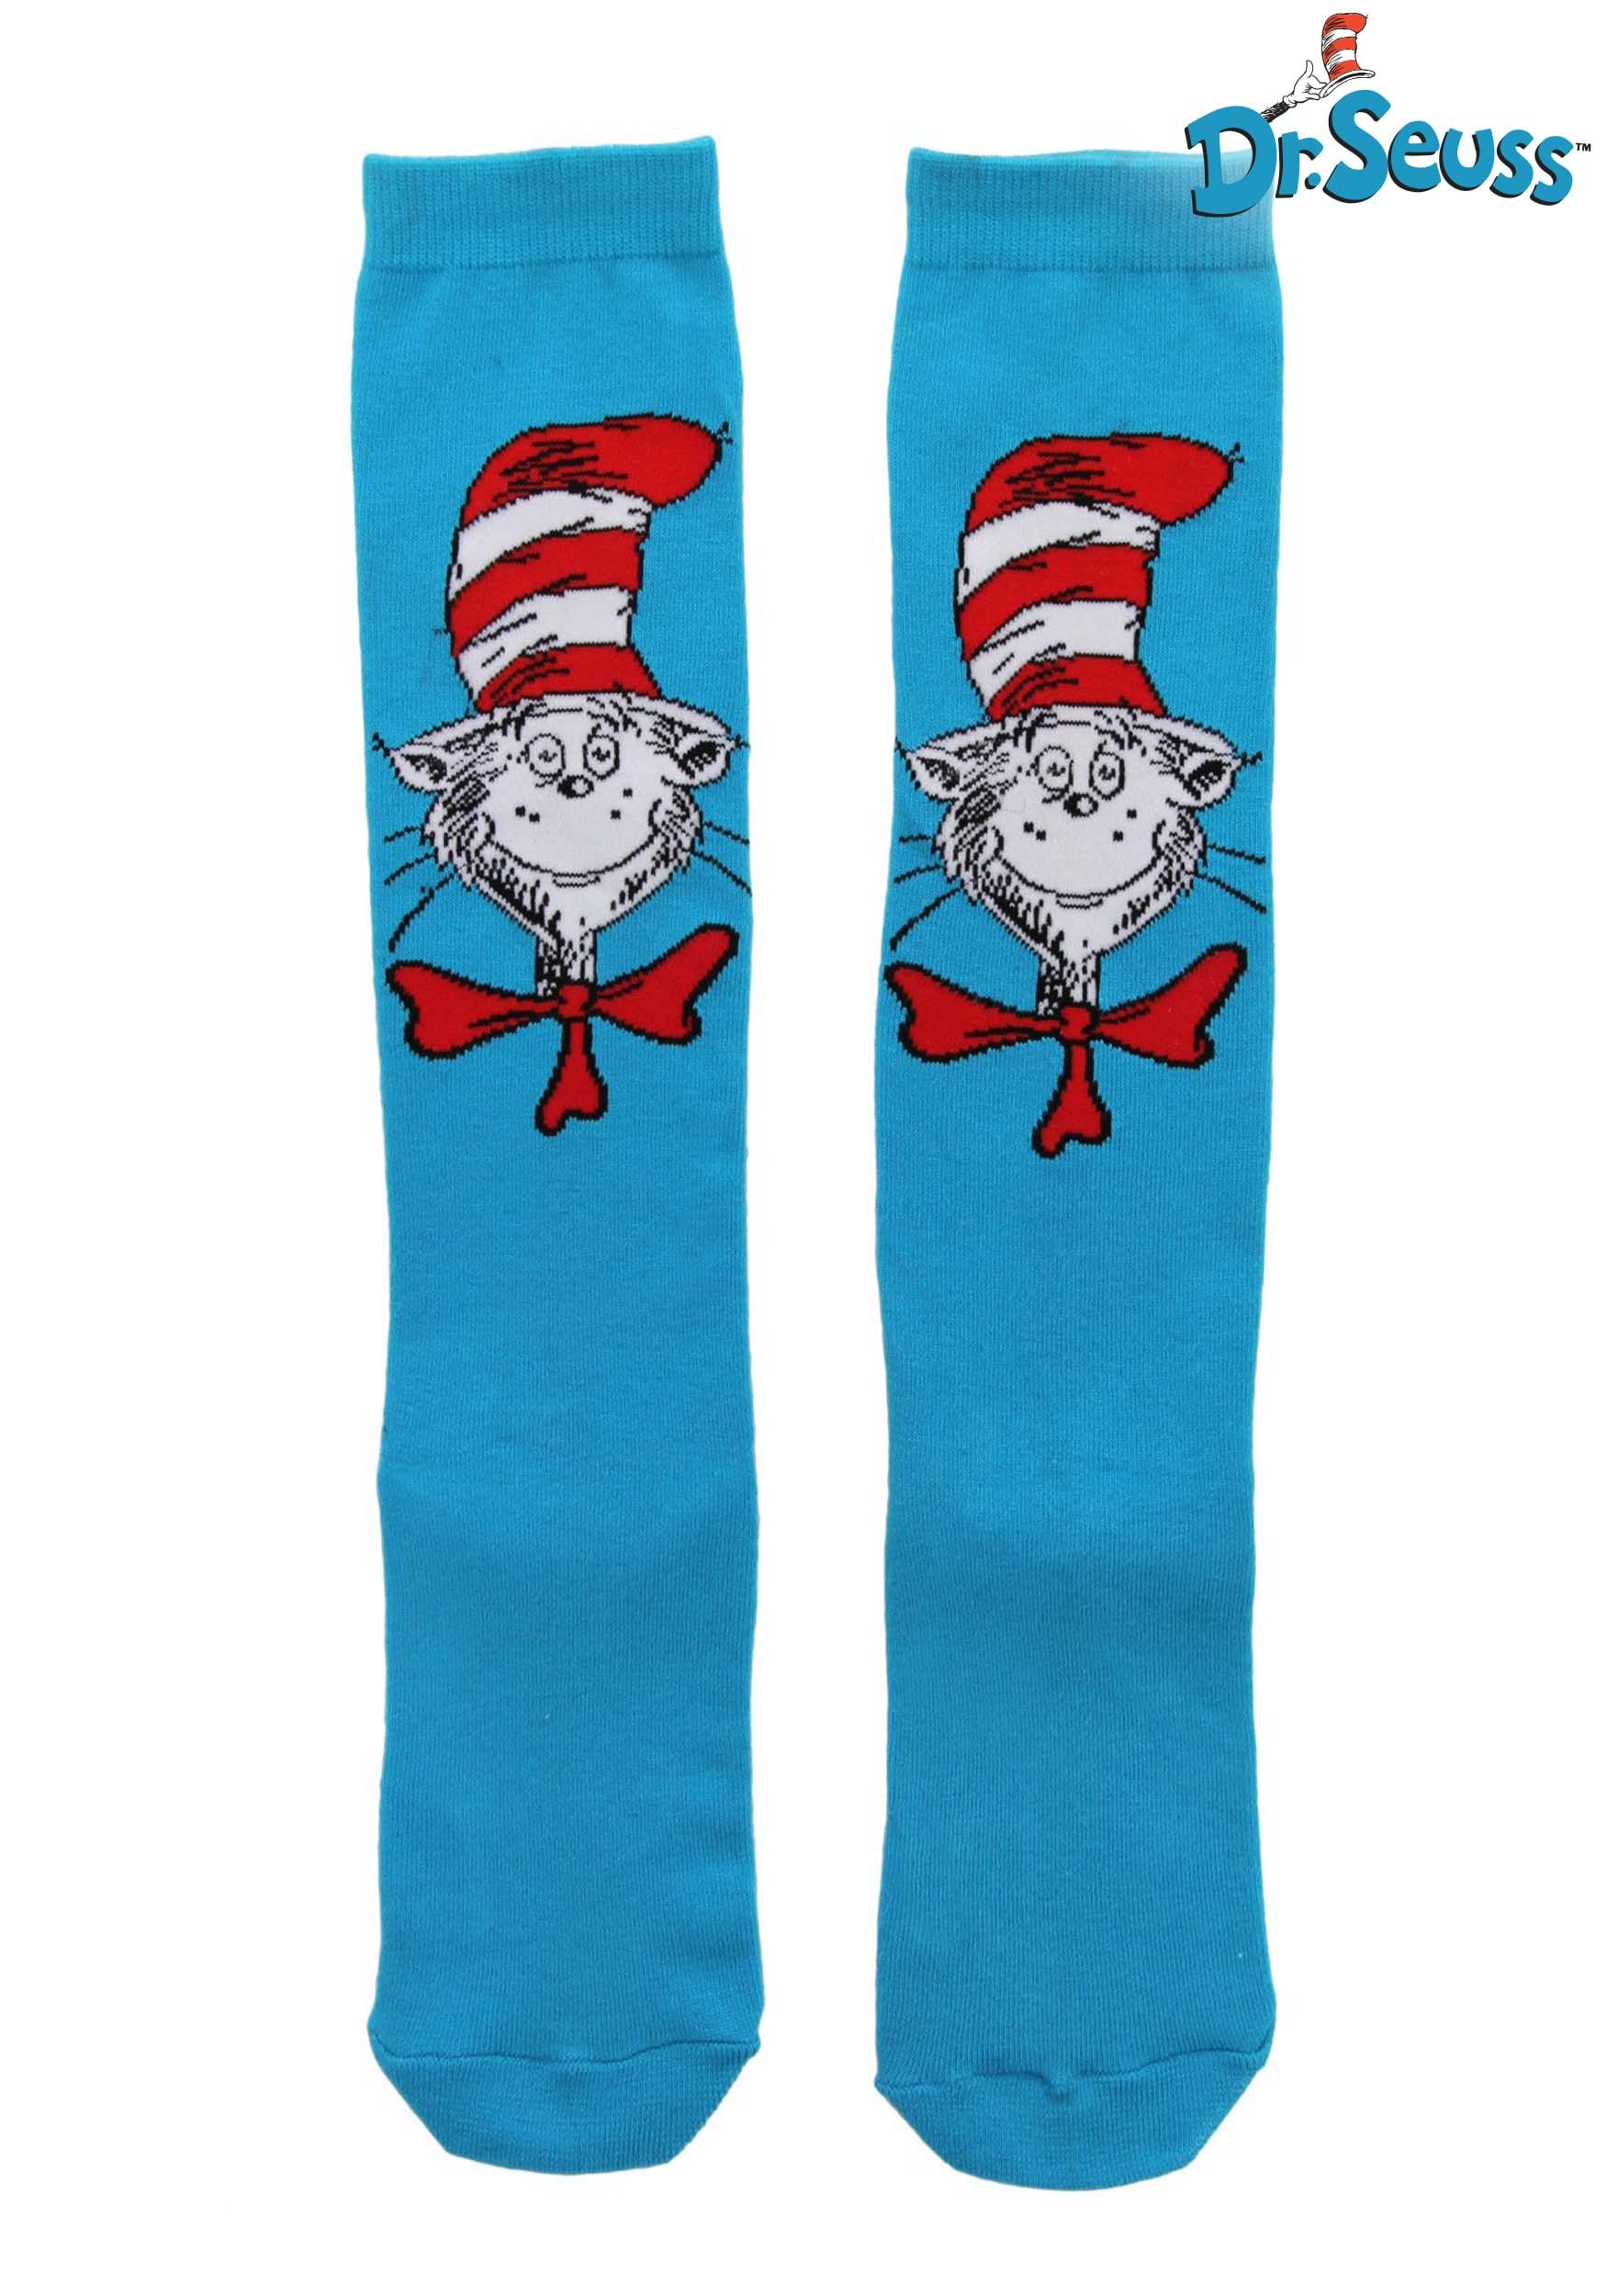 edaba1d8050 Dr. Seuss The Cat in the Hat Knee High Sock For Women